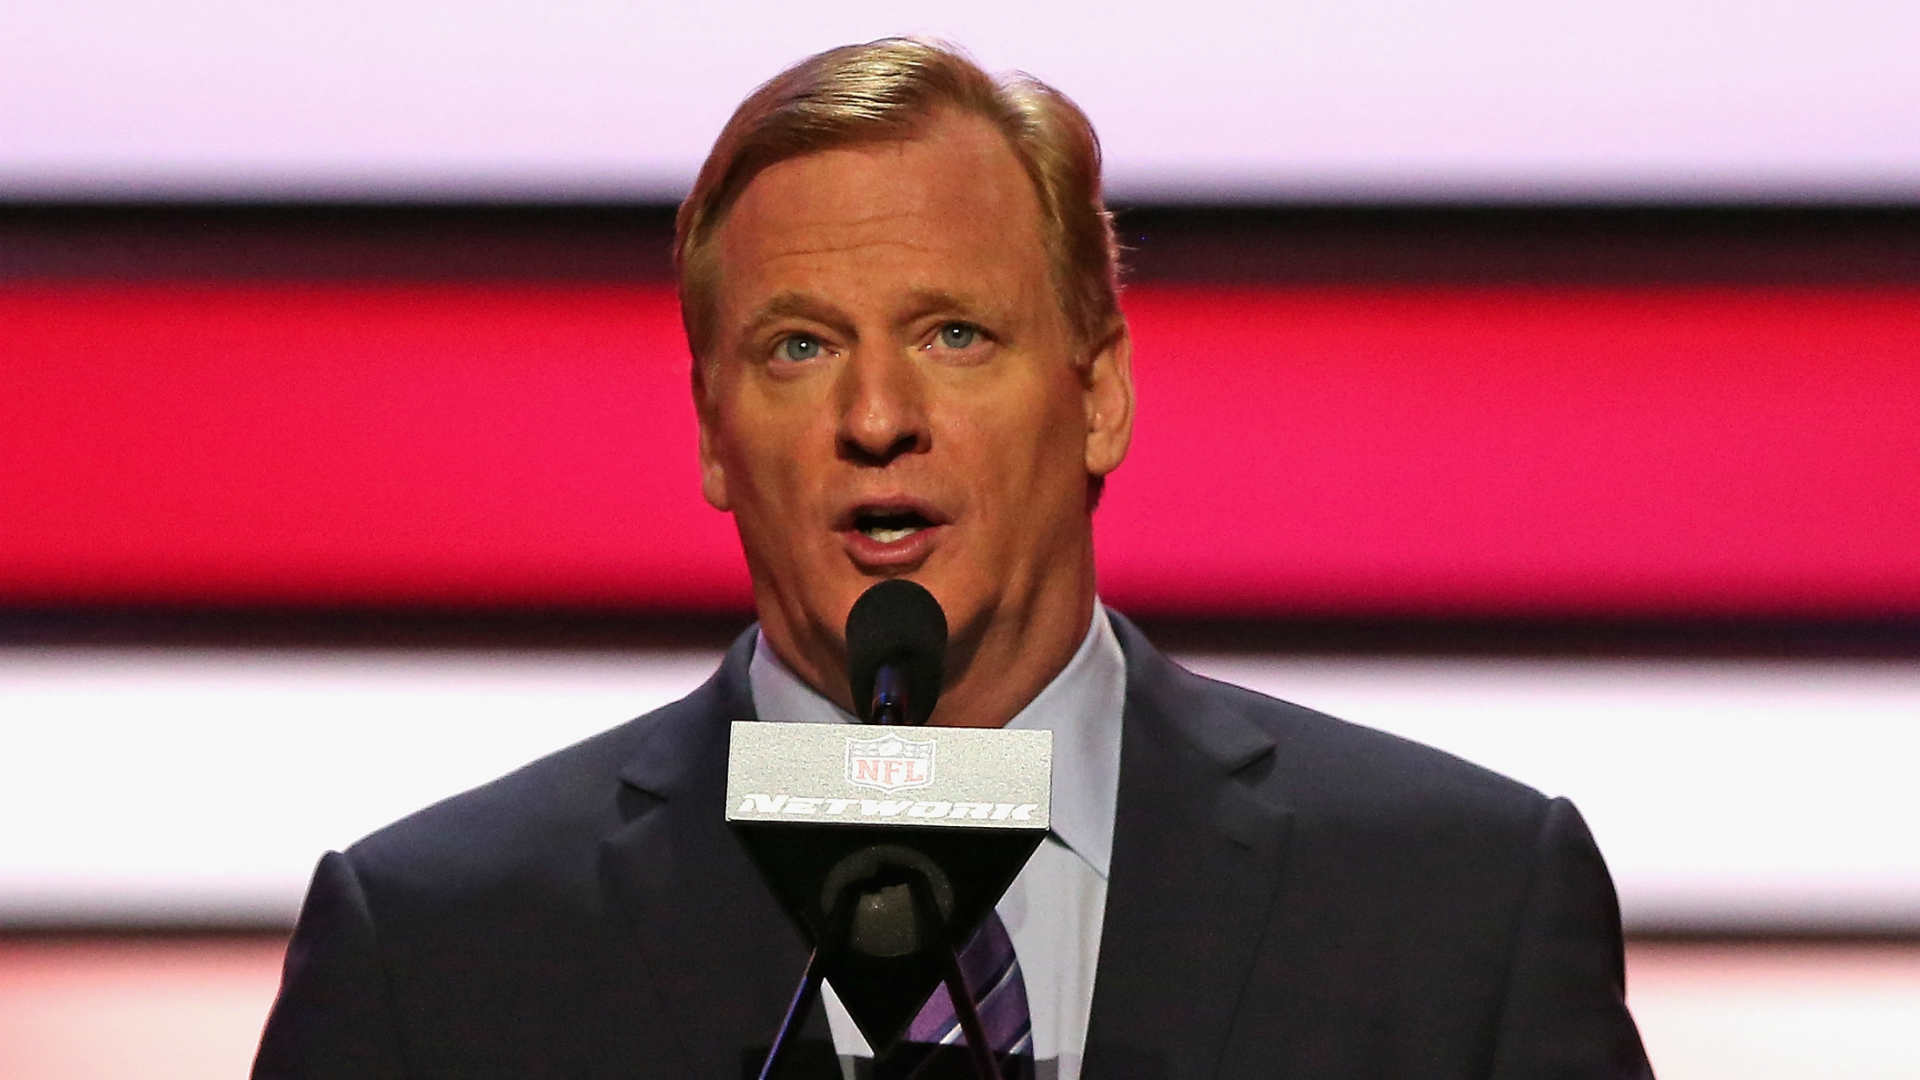 Here's what we expect Roger Goodell to say Wednesday